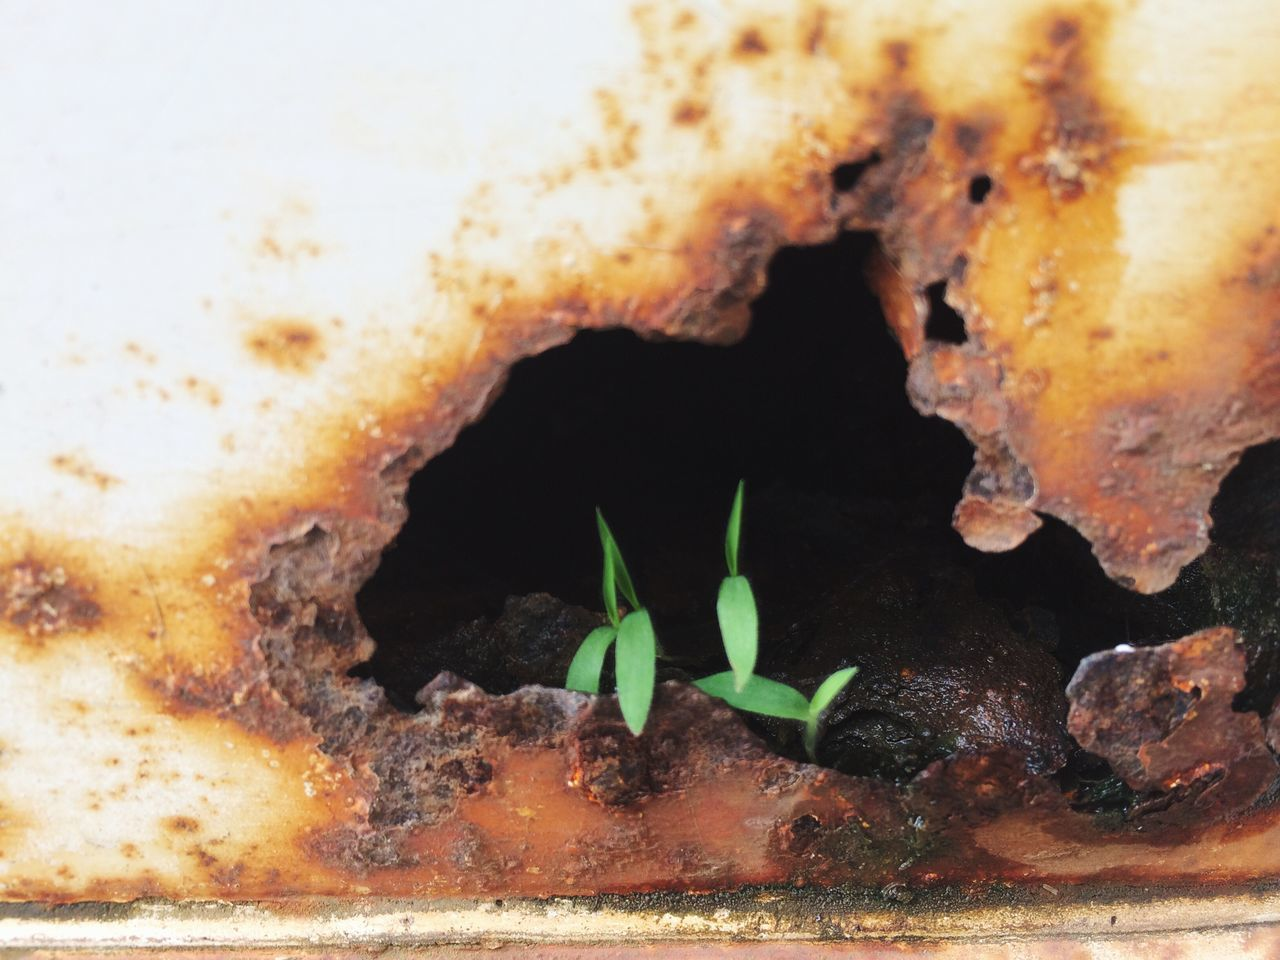 Small Green plants are growing on the hole full of rust Rusty Small Plant Green Natural Hole In The Wall Rust On Car